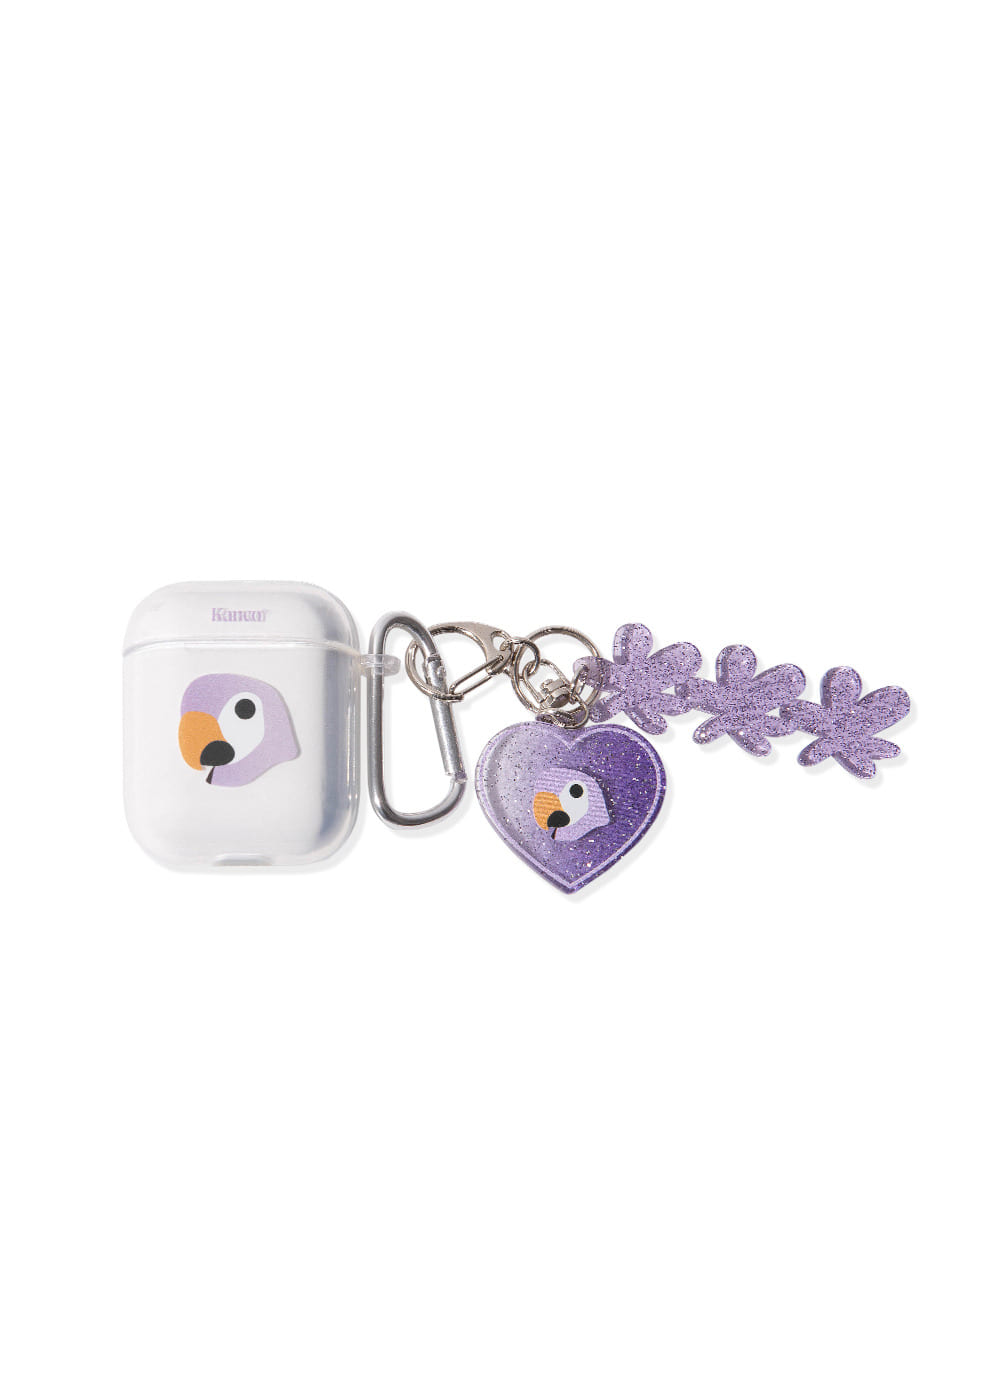 KANCO SYMBOL AIRPODS JELLY CASE with KEY RING clear